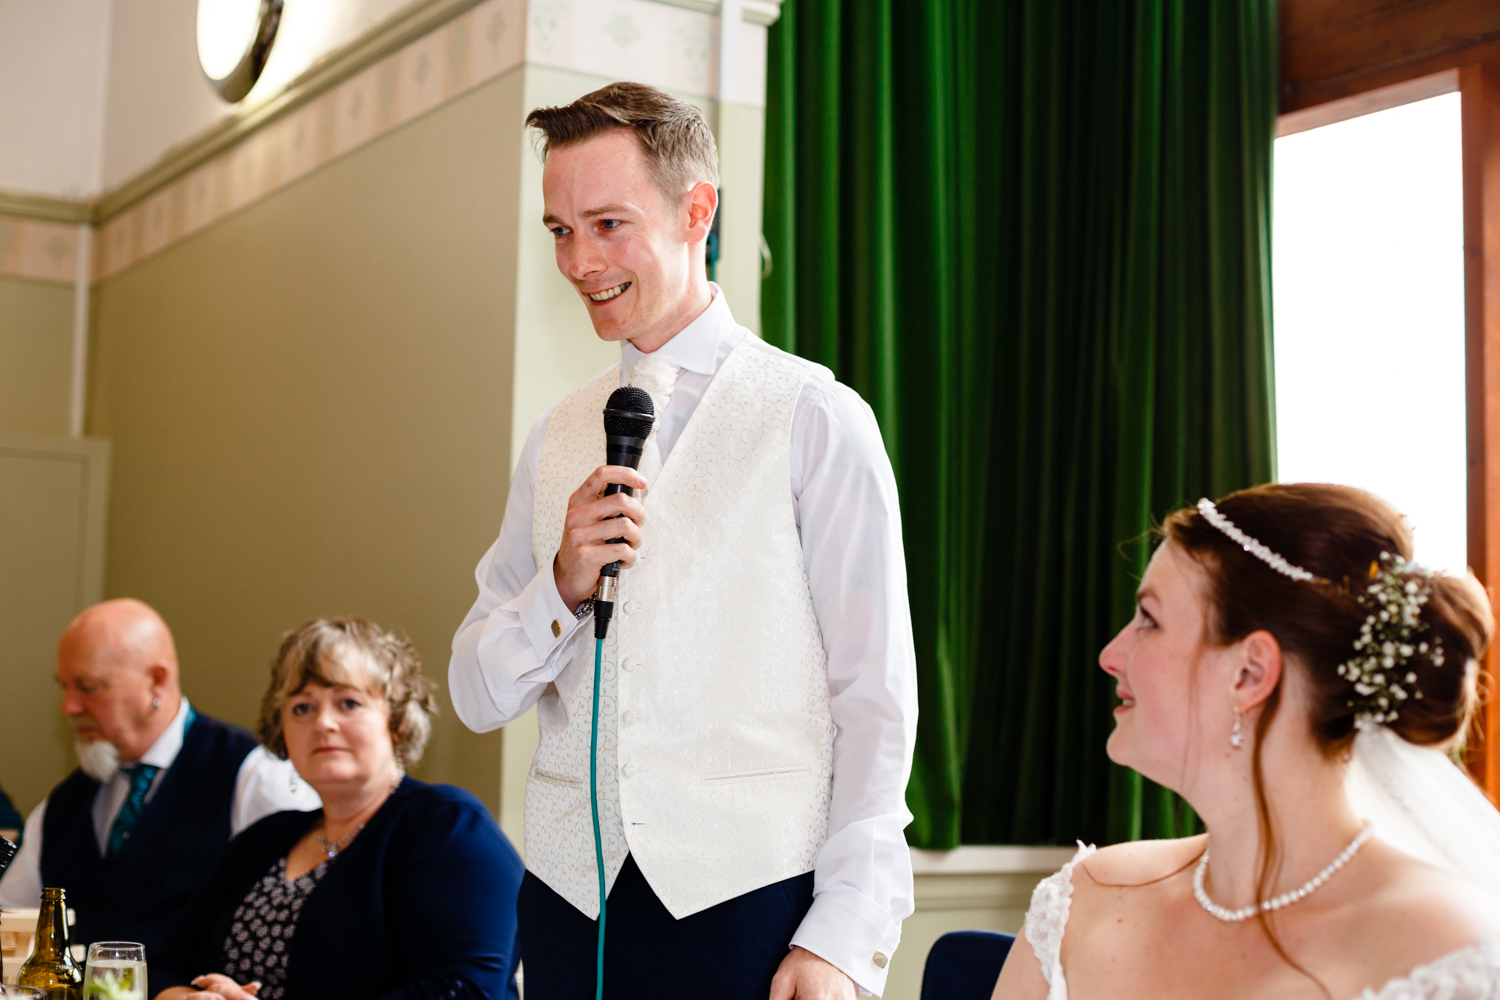 Lancashire-wedding-photographer-adele-and-alex-107.jpg